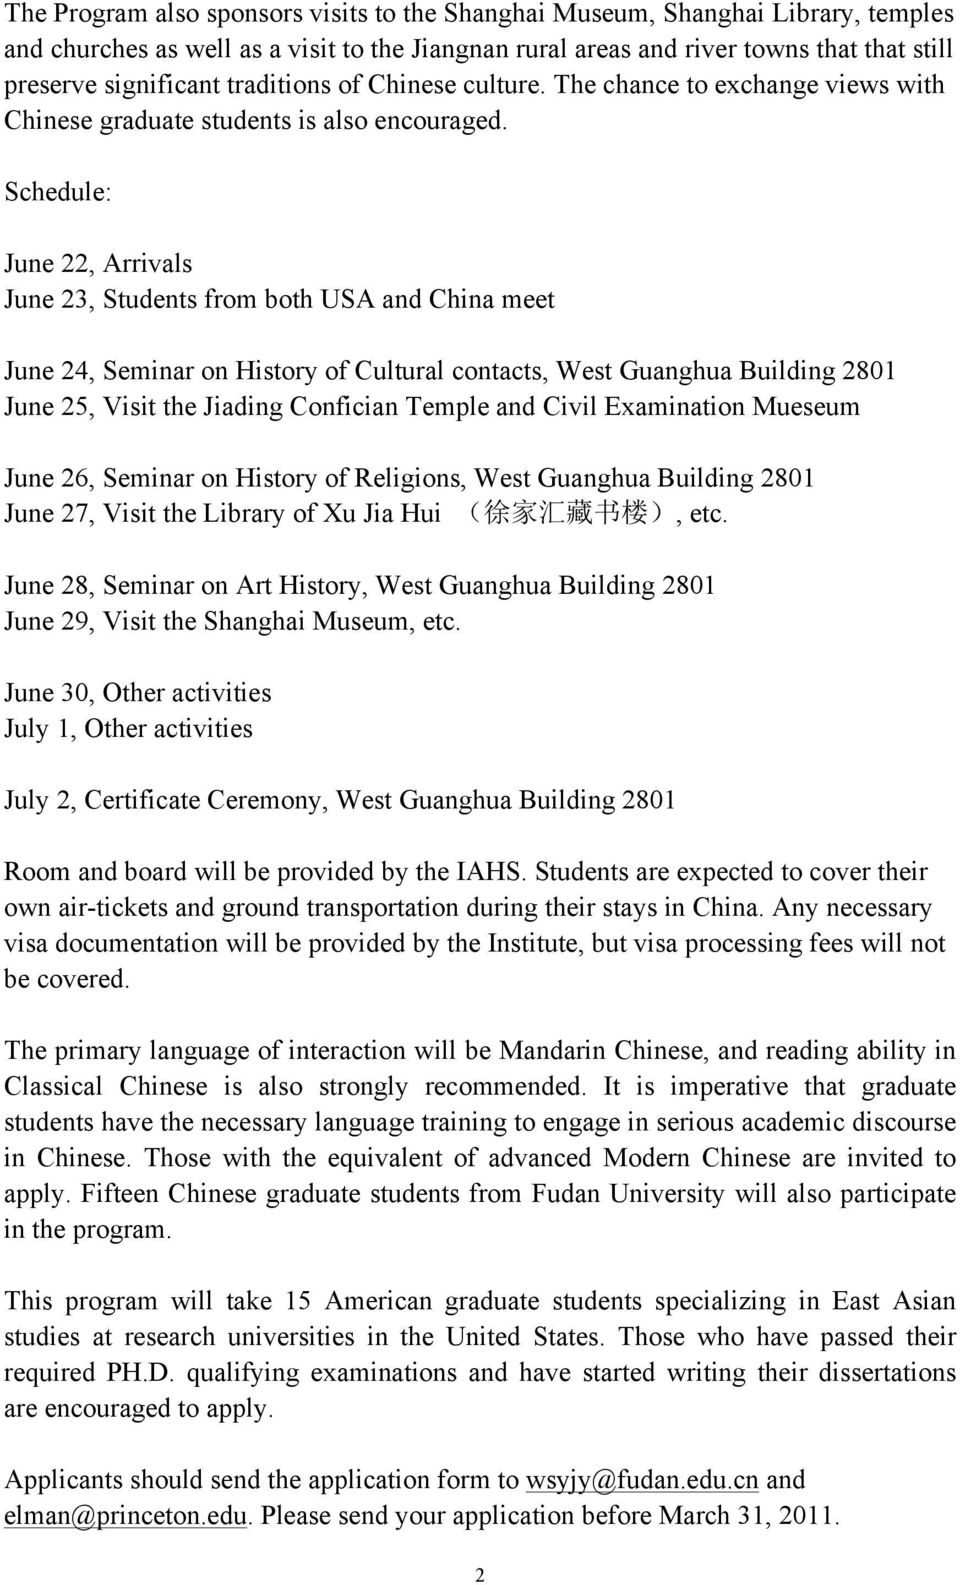 Schedule: June 22, Arrivals June 23, Students from both USA and China meet June 24, Seminar on History of Cultural contacts, West Guanghua Building 2801 June 25, Visit the Jiading Confician Temple